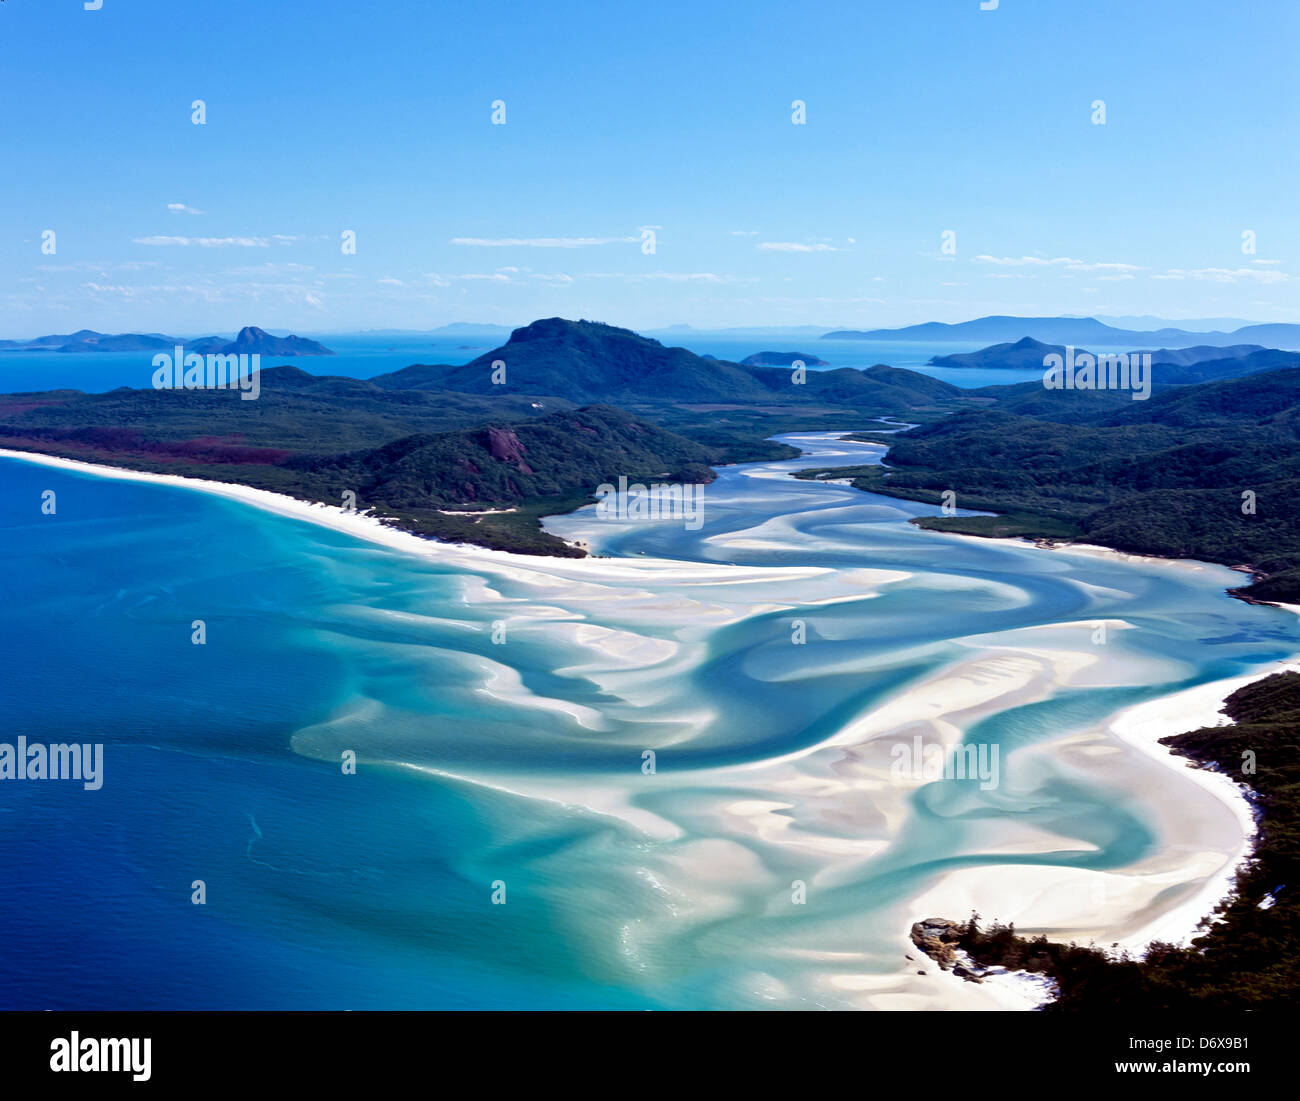 8630. Whitehaven Beach, Whitsunday Islands, Queensland, Australia - Stock Image